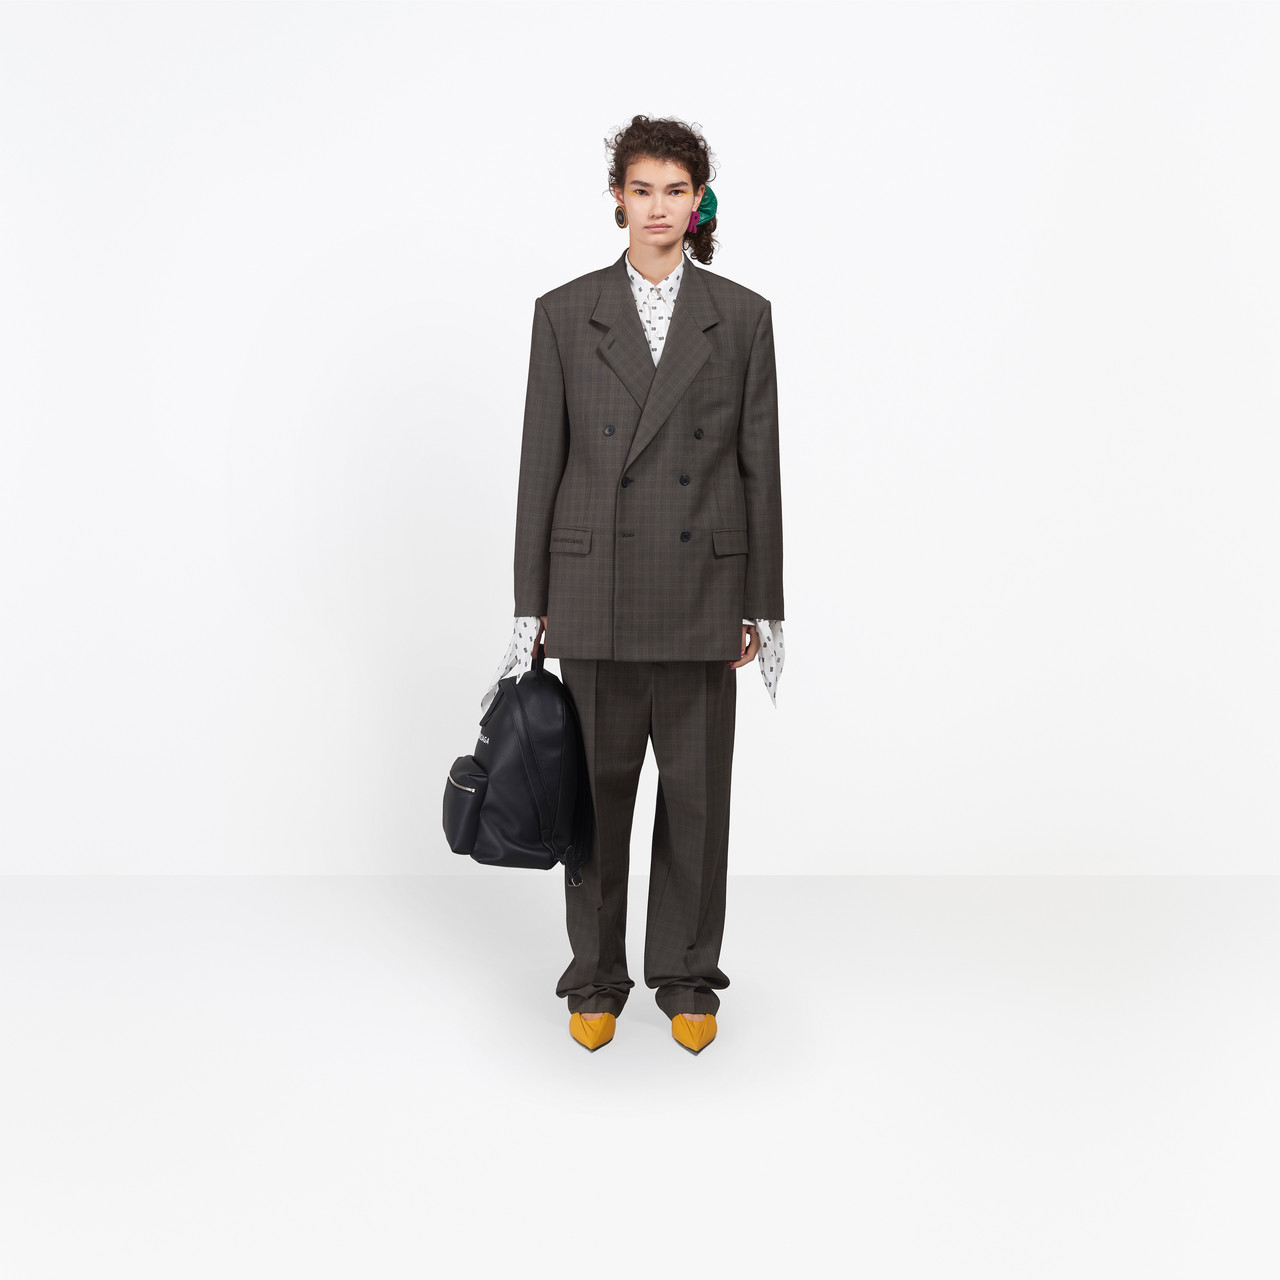 Checked weaving masculine double breasted tailored jacket by Balenciaga, available on balenciaga.com for $2350 Kendall Jenner Outerwear SIMILAR PRODUCT